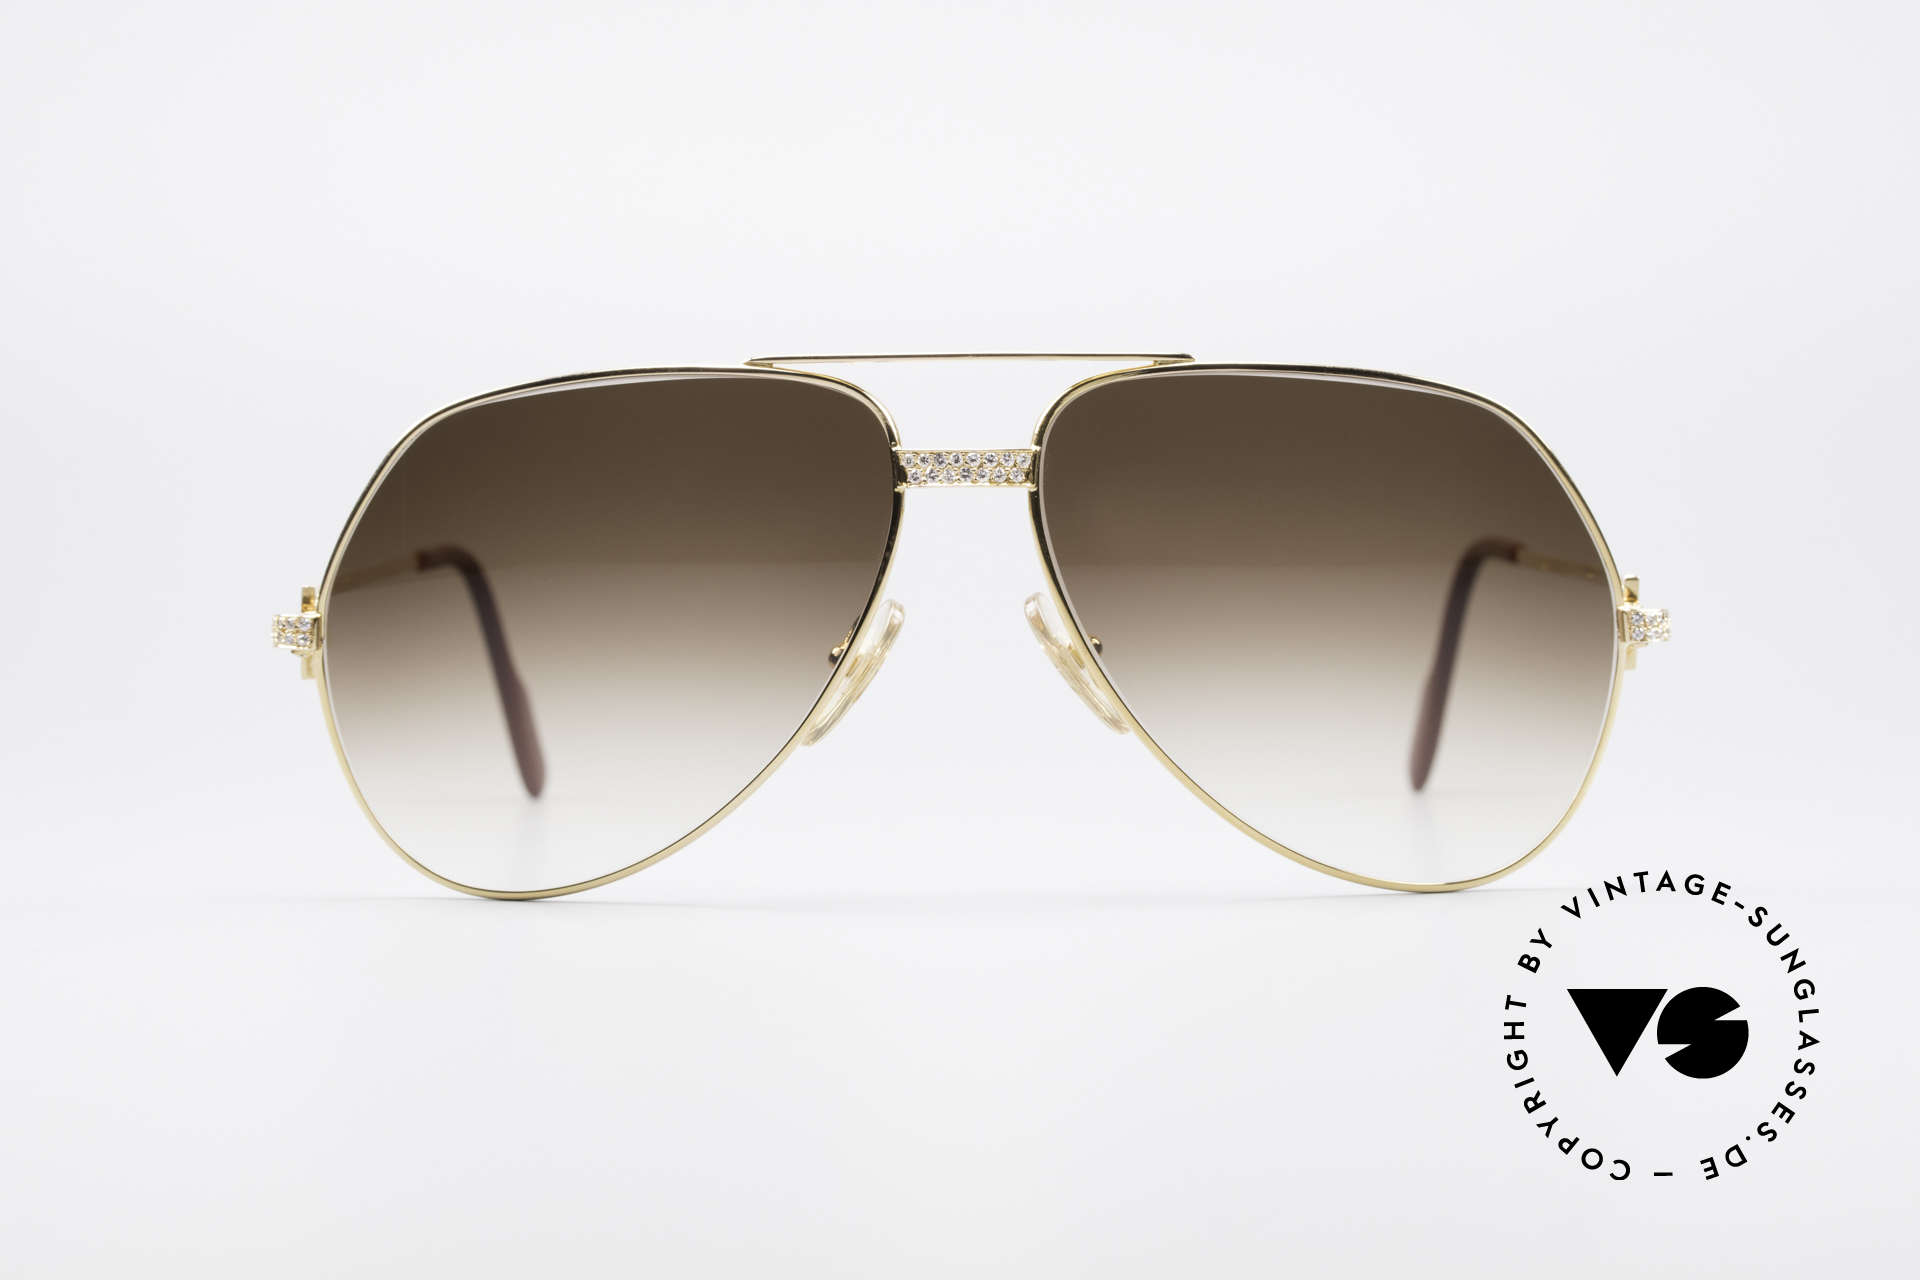 Cartier Grand Pavage Diamond Glasses, 18kt (750) SOLID GOLD frame with 0.86 carat BRILLANTS, Made for Men